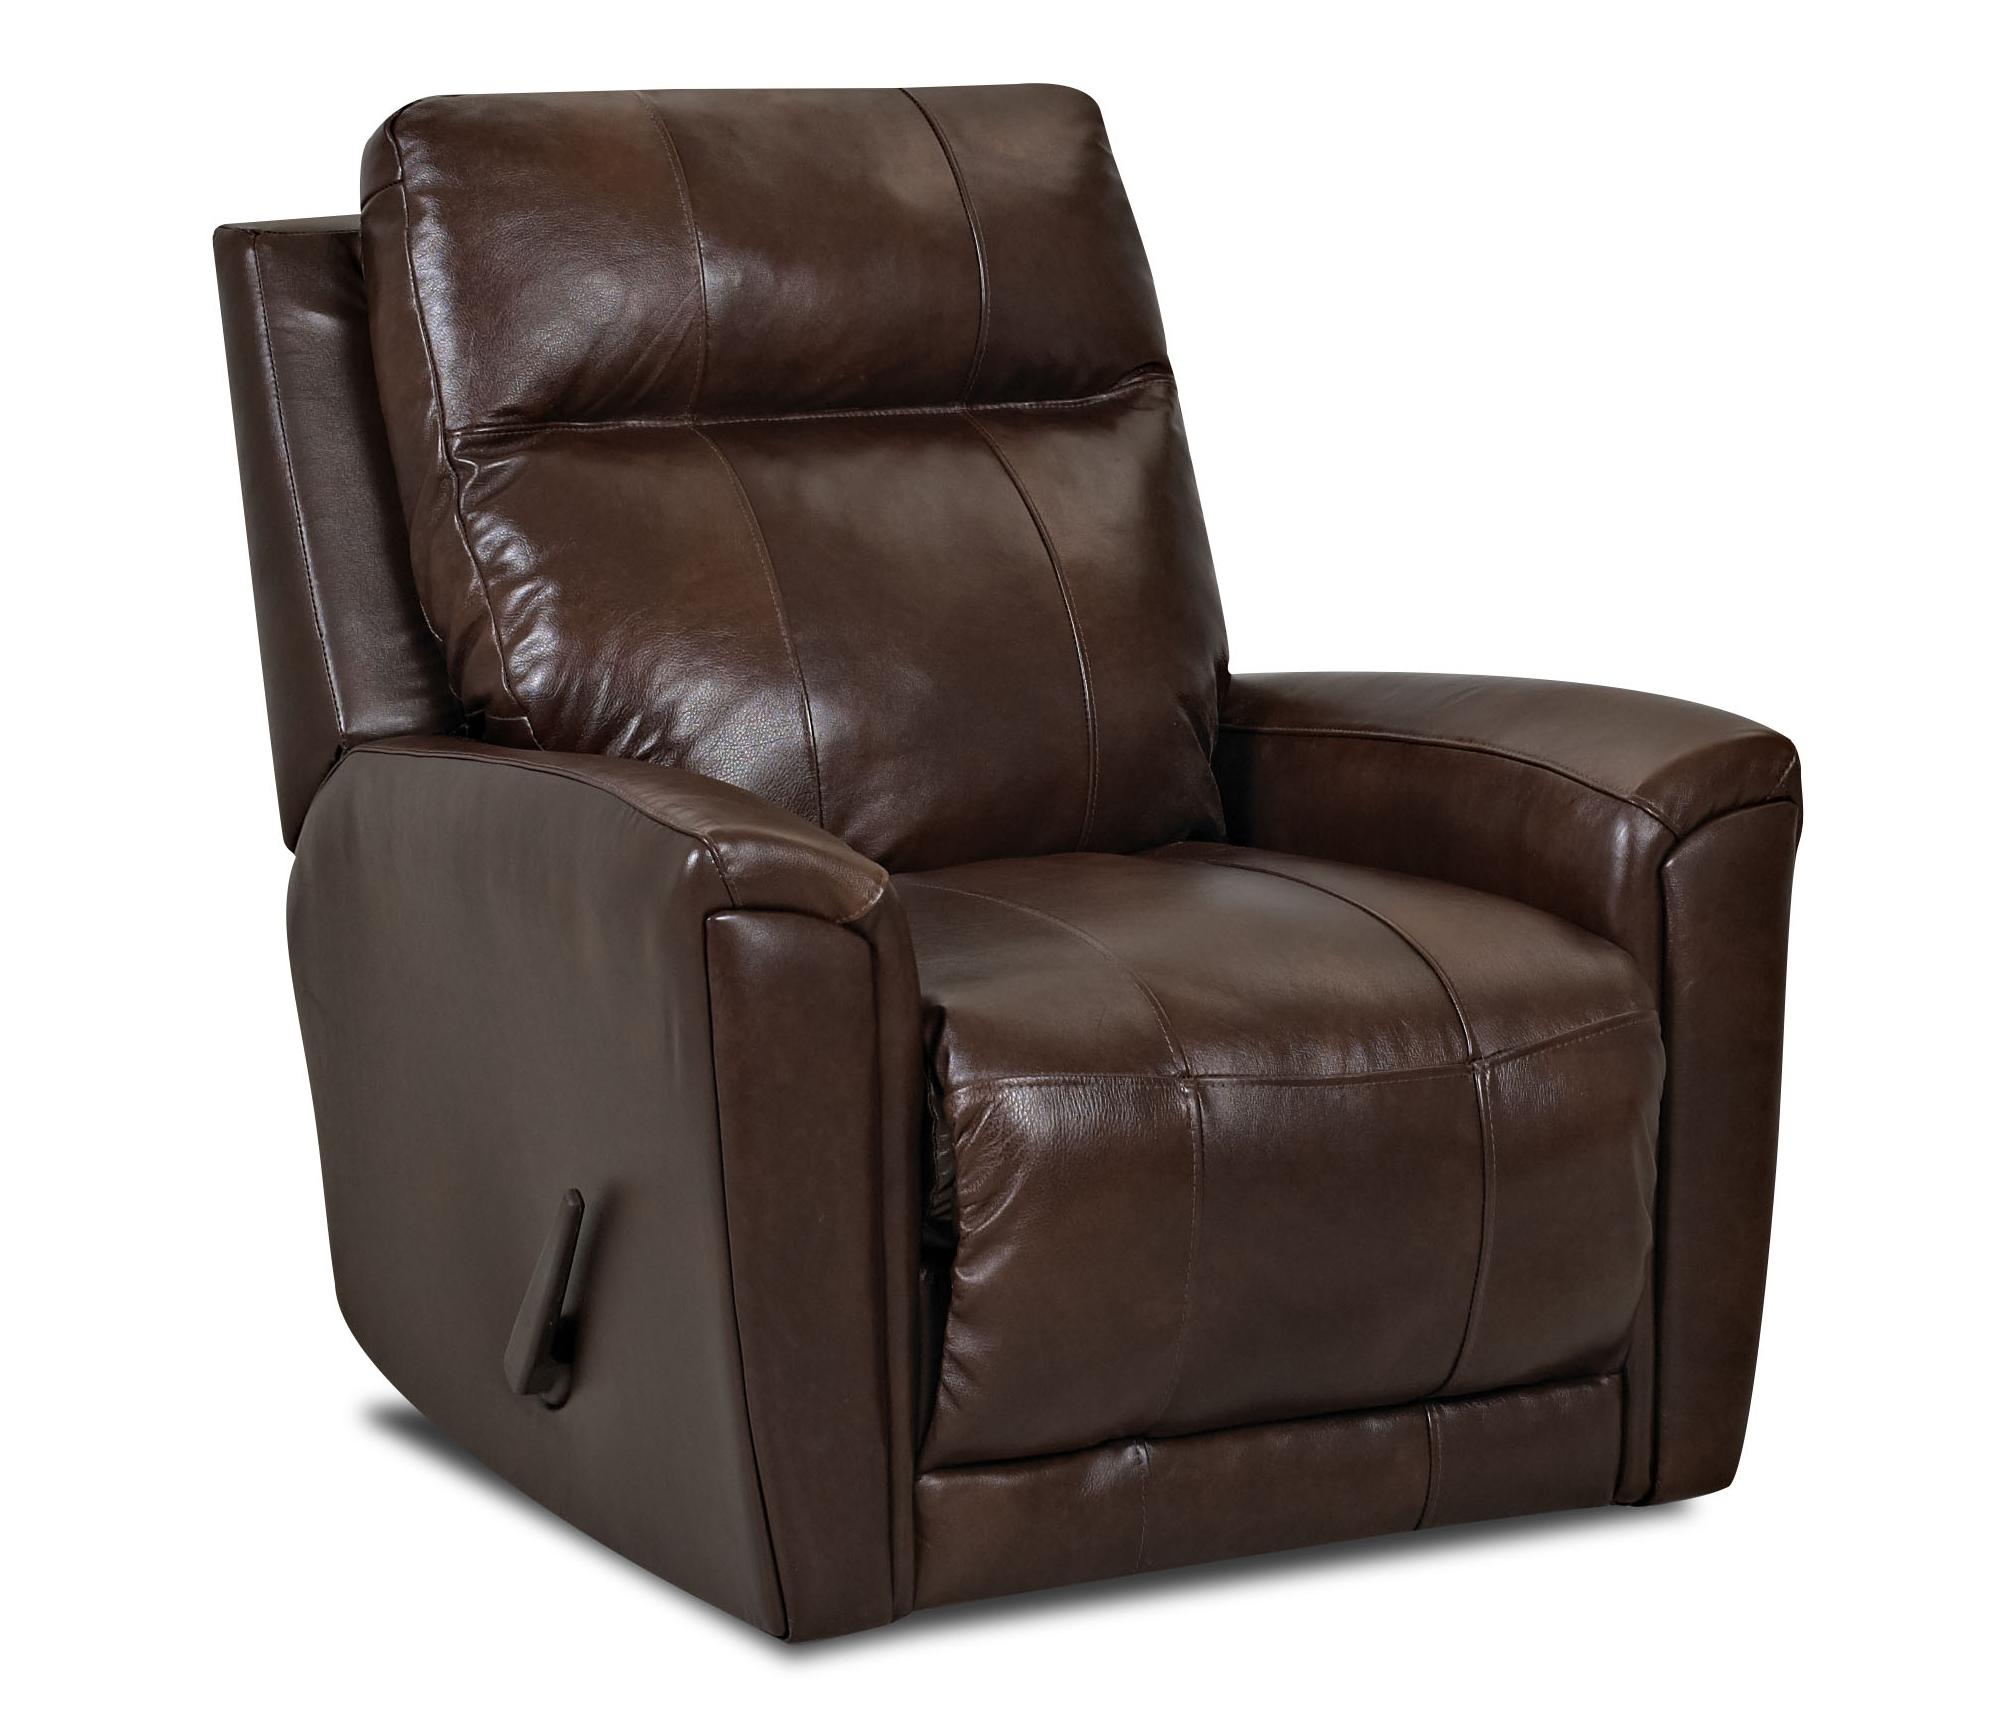 Priest Transitional Reclining Rocking Chair by Klaussner